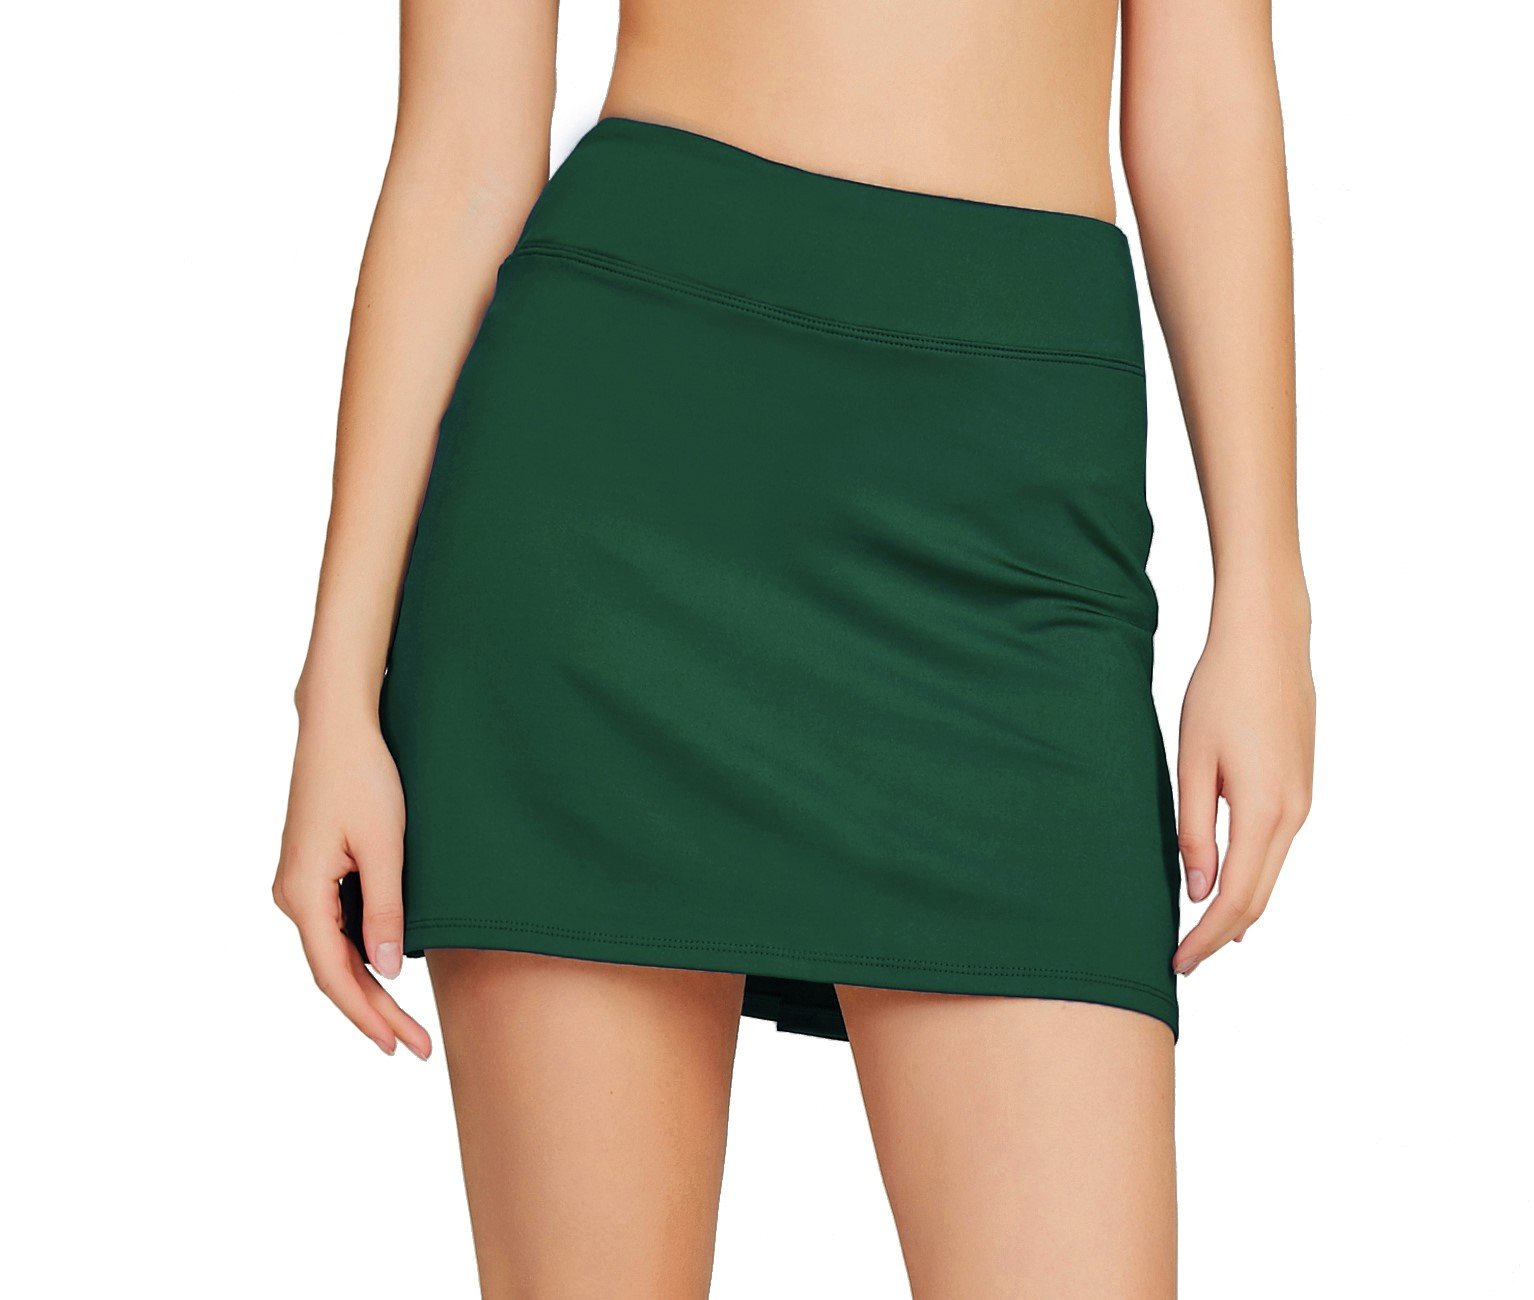 Cityoung Women's Casual Pleated Tennis Golf Skirt with Underneath Shorts Running Skorts d_gn XXL by Cityoung